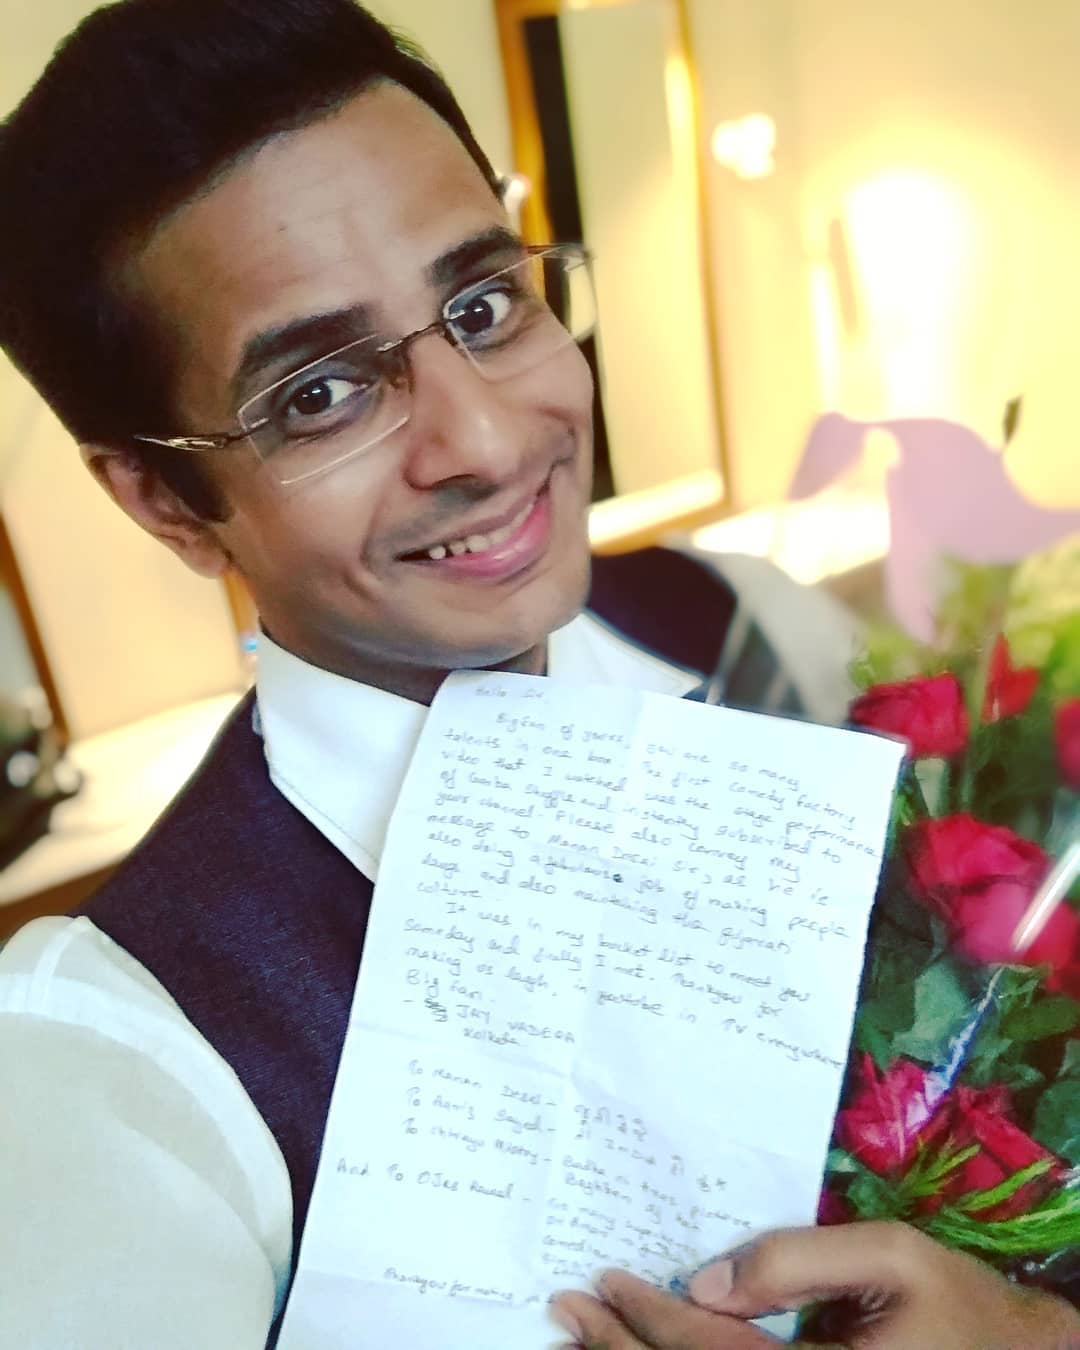 Nothing beats hand-written fan mail 📝Thank you for the lovely letters, Calcutta 😍 🔹 #fanmail #letters #love #fans #OjasRawal #actor #comedian #happyme #selfie #roses #flowers #smile #letter #gujarati #show #gujju #fanmoment #gifts #blessed #loveit #ojas #awesome #sohappy #mademyday #yay #me #aww #fanlove #thankyou #thanks